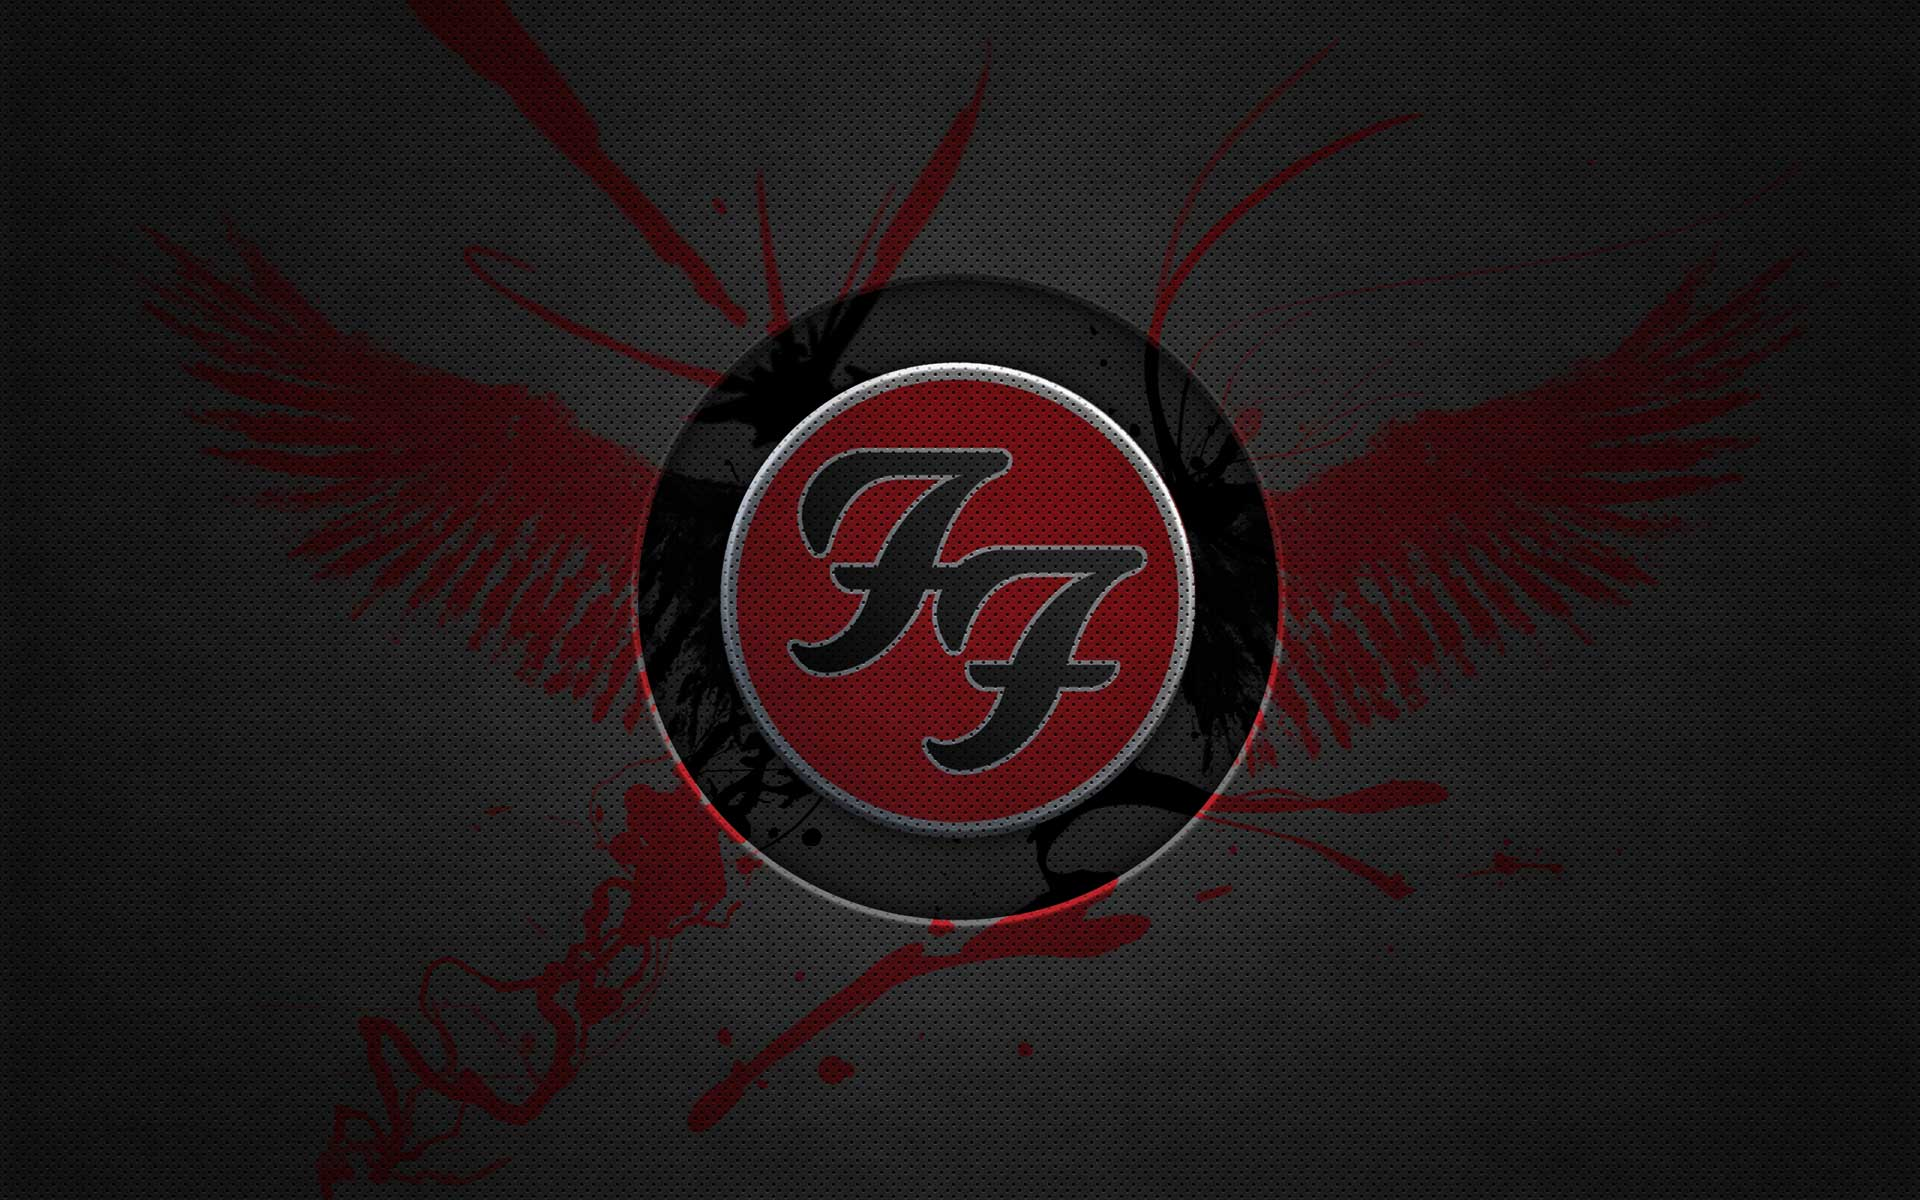 Foo Fighters Wallpapers Wallpaper Cave